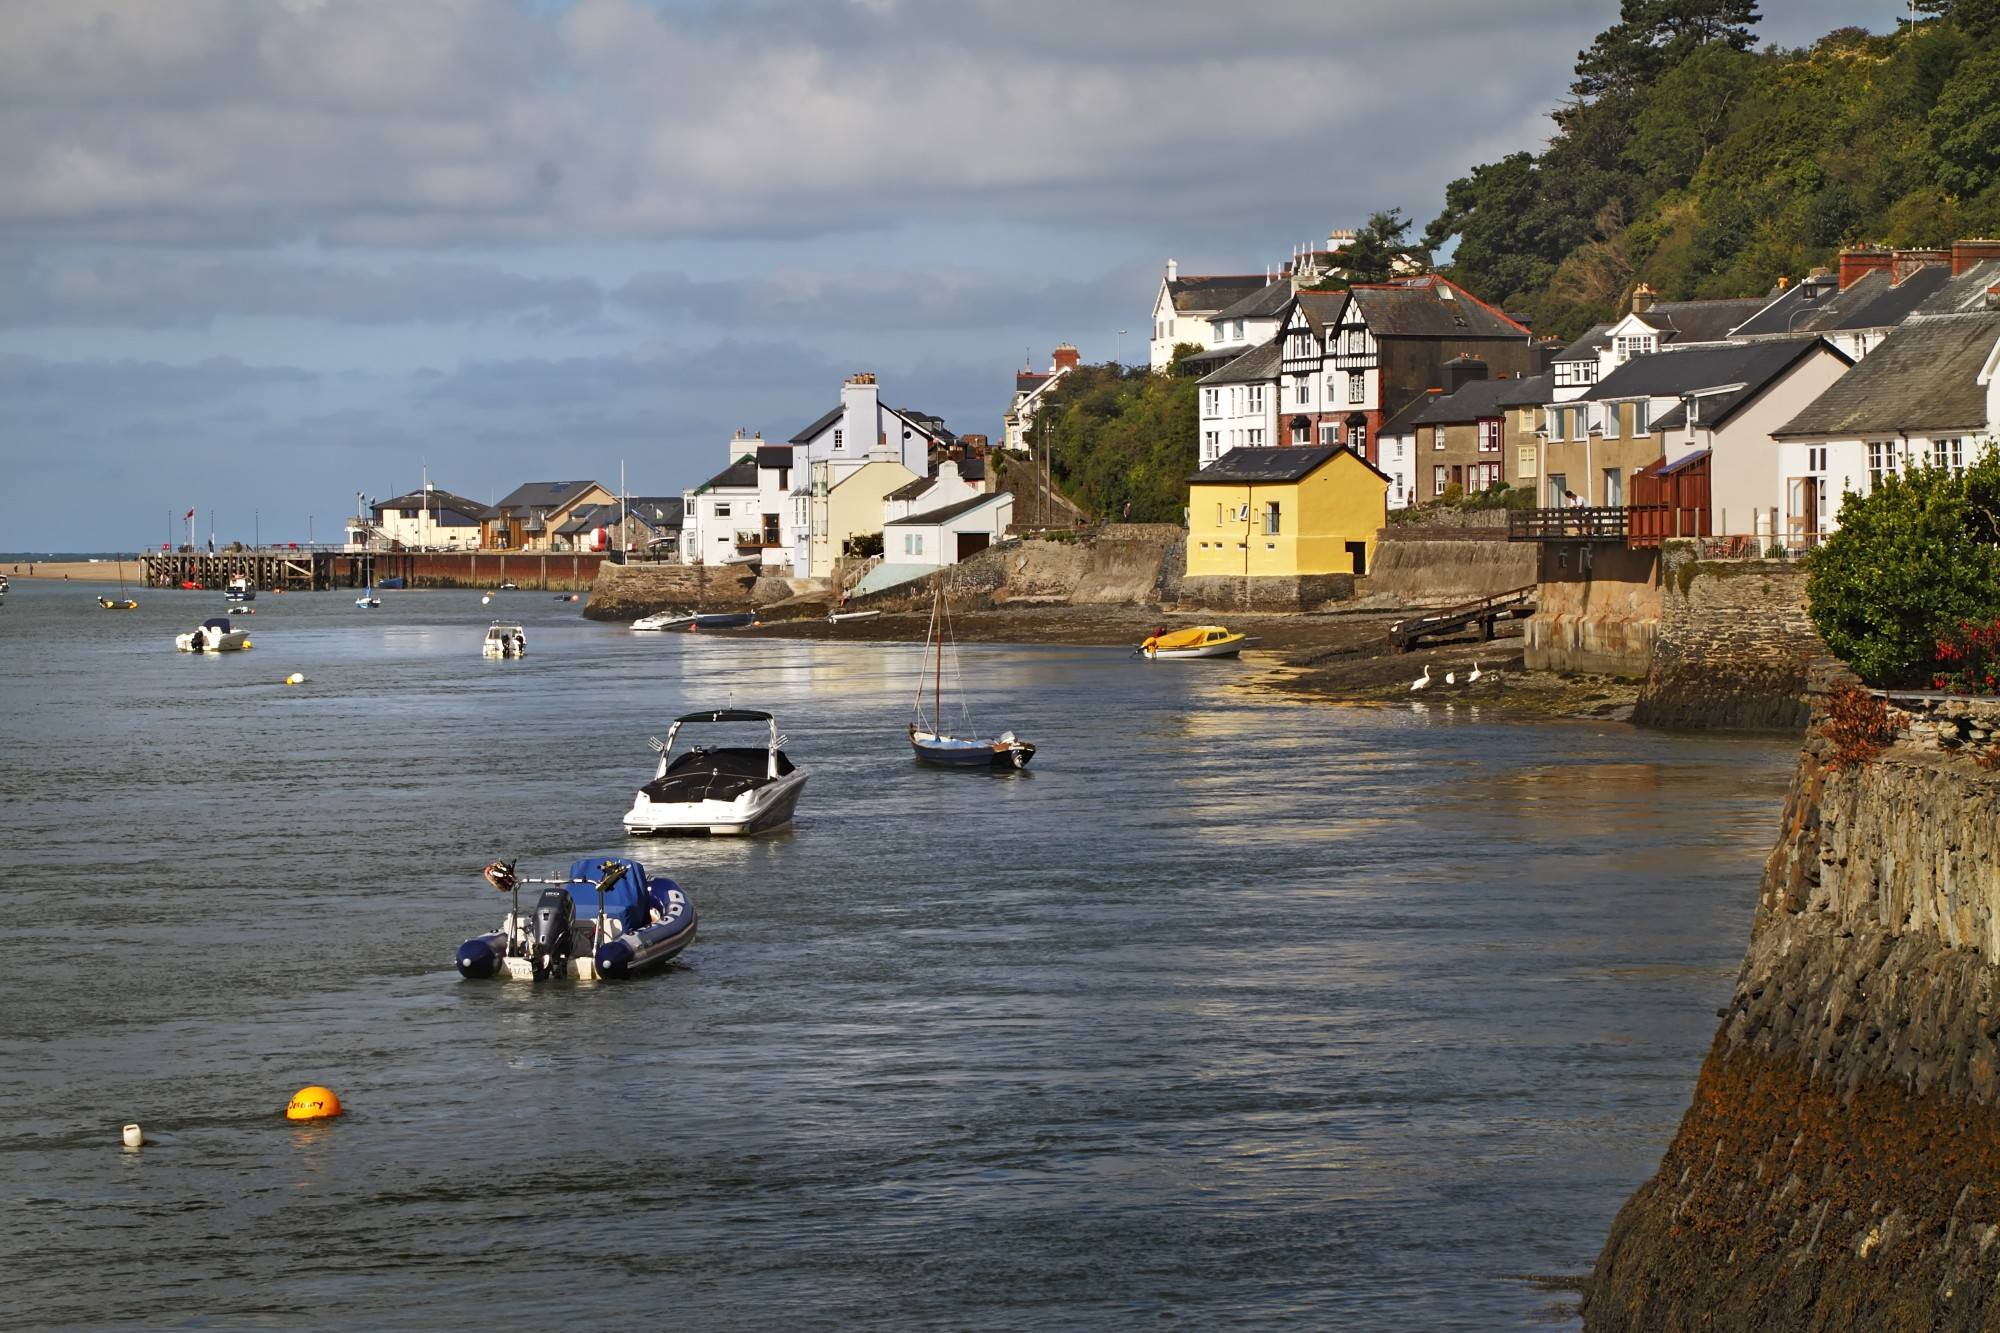 Boats in Aberdovey from Penhelig Arms